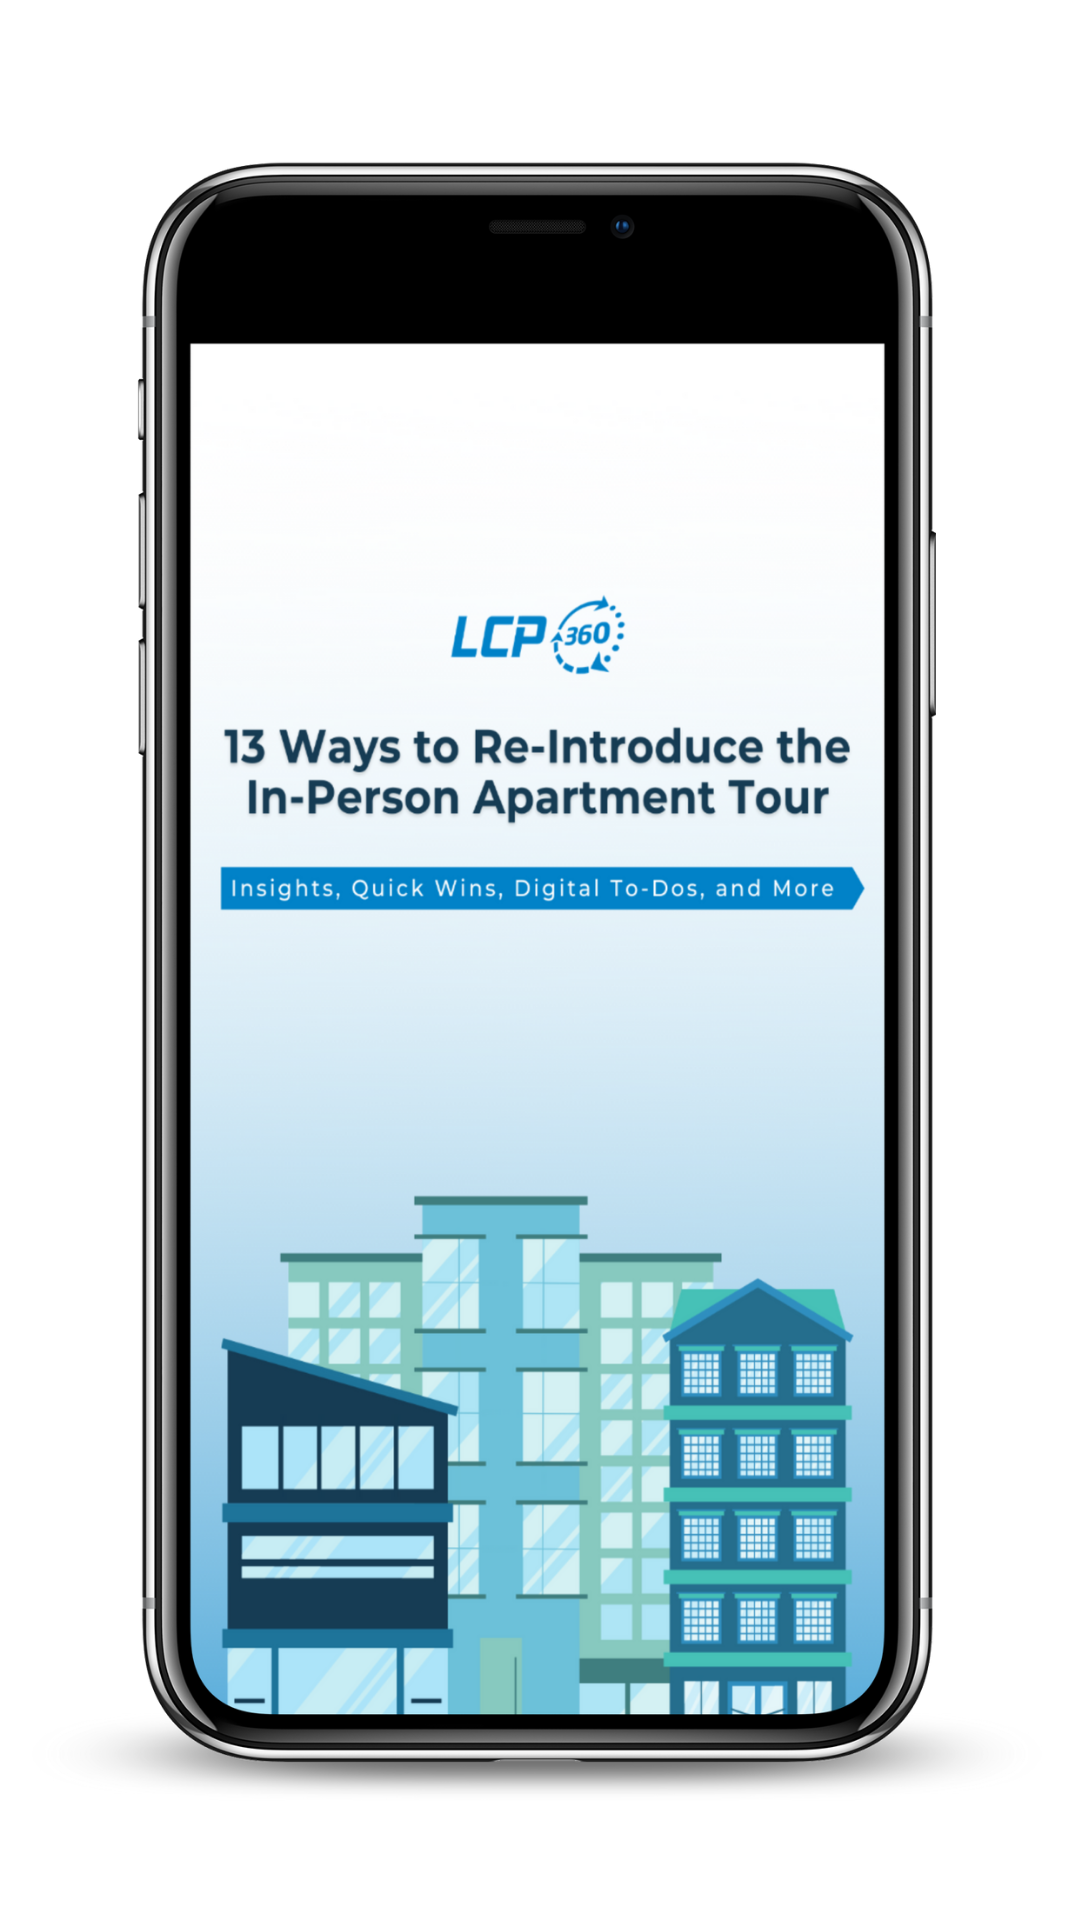 Ways to Re-Introduce the In-Person Apartment Tour (3)